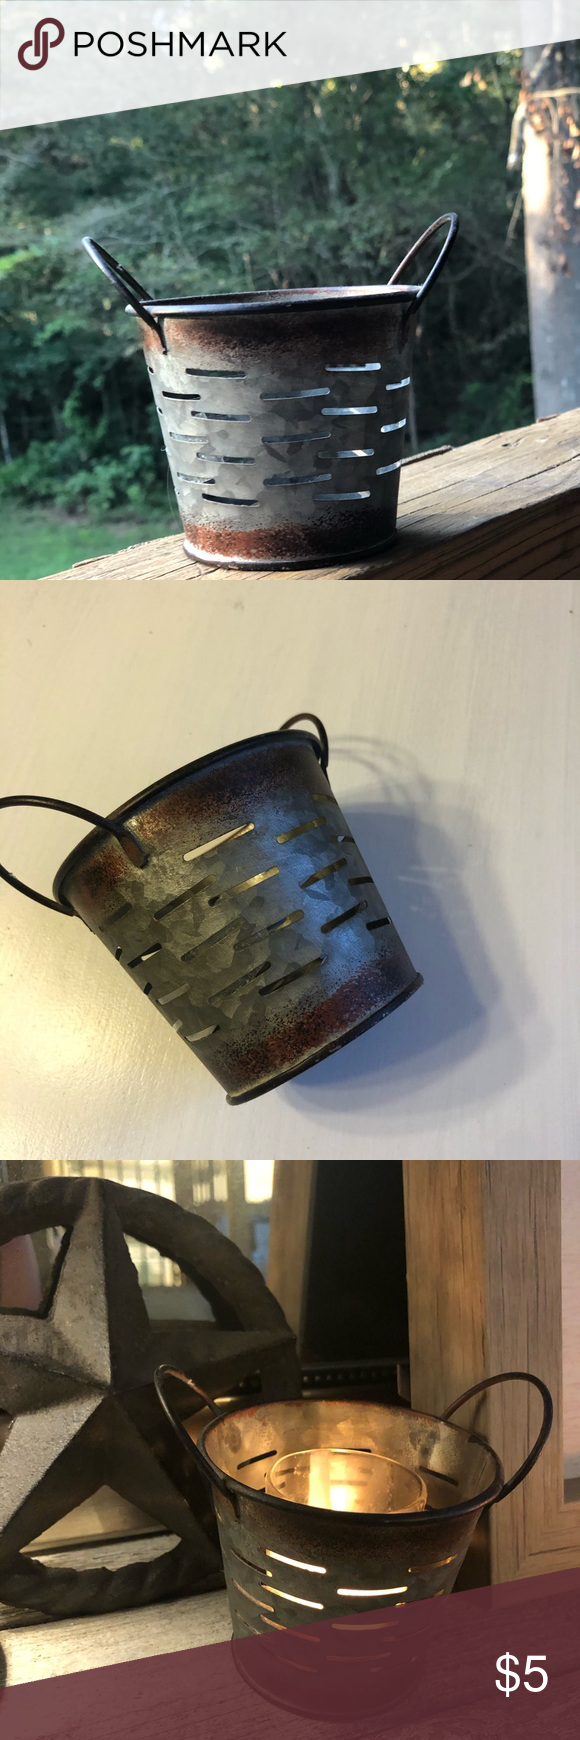 Farmhouse rustic small bucket or candleholder This adorable little bucket is perfect for keeping candy in, using as a Knick knack decor, putting small amounts of potpourri, or using as a candle holder.   (Candle in picture not included) Other #knickknack